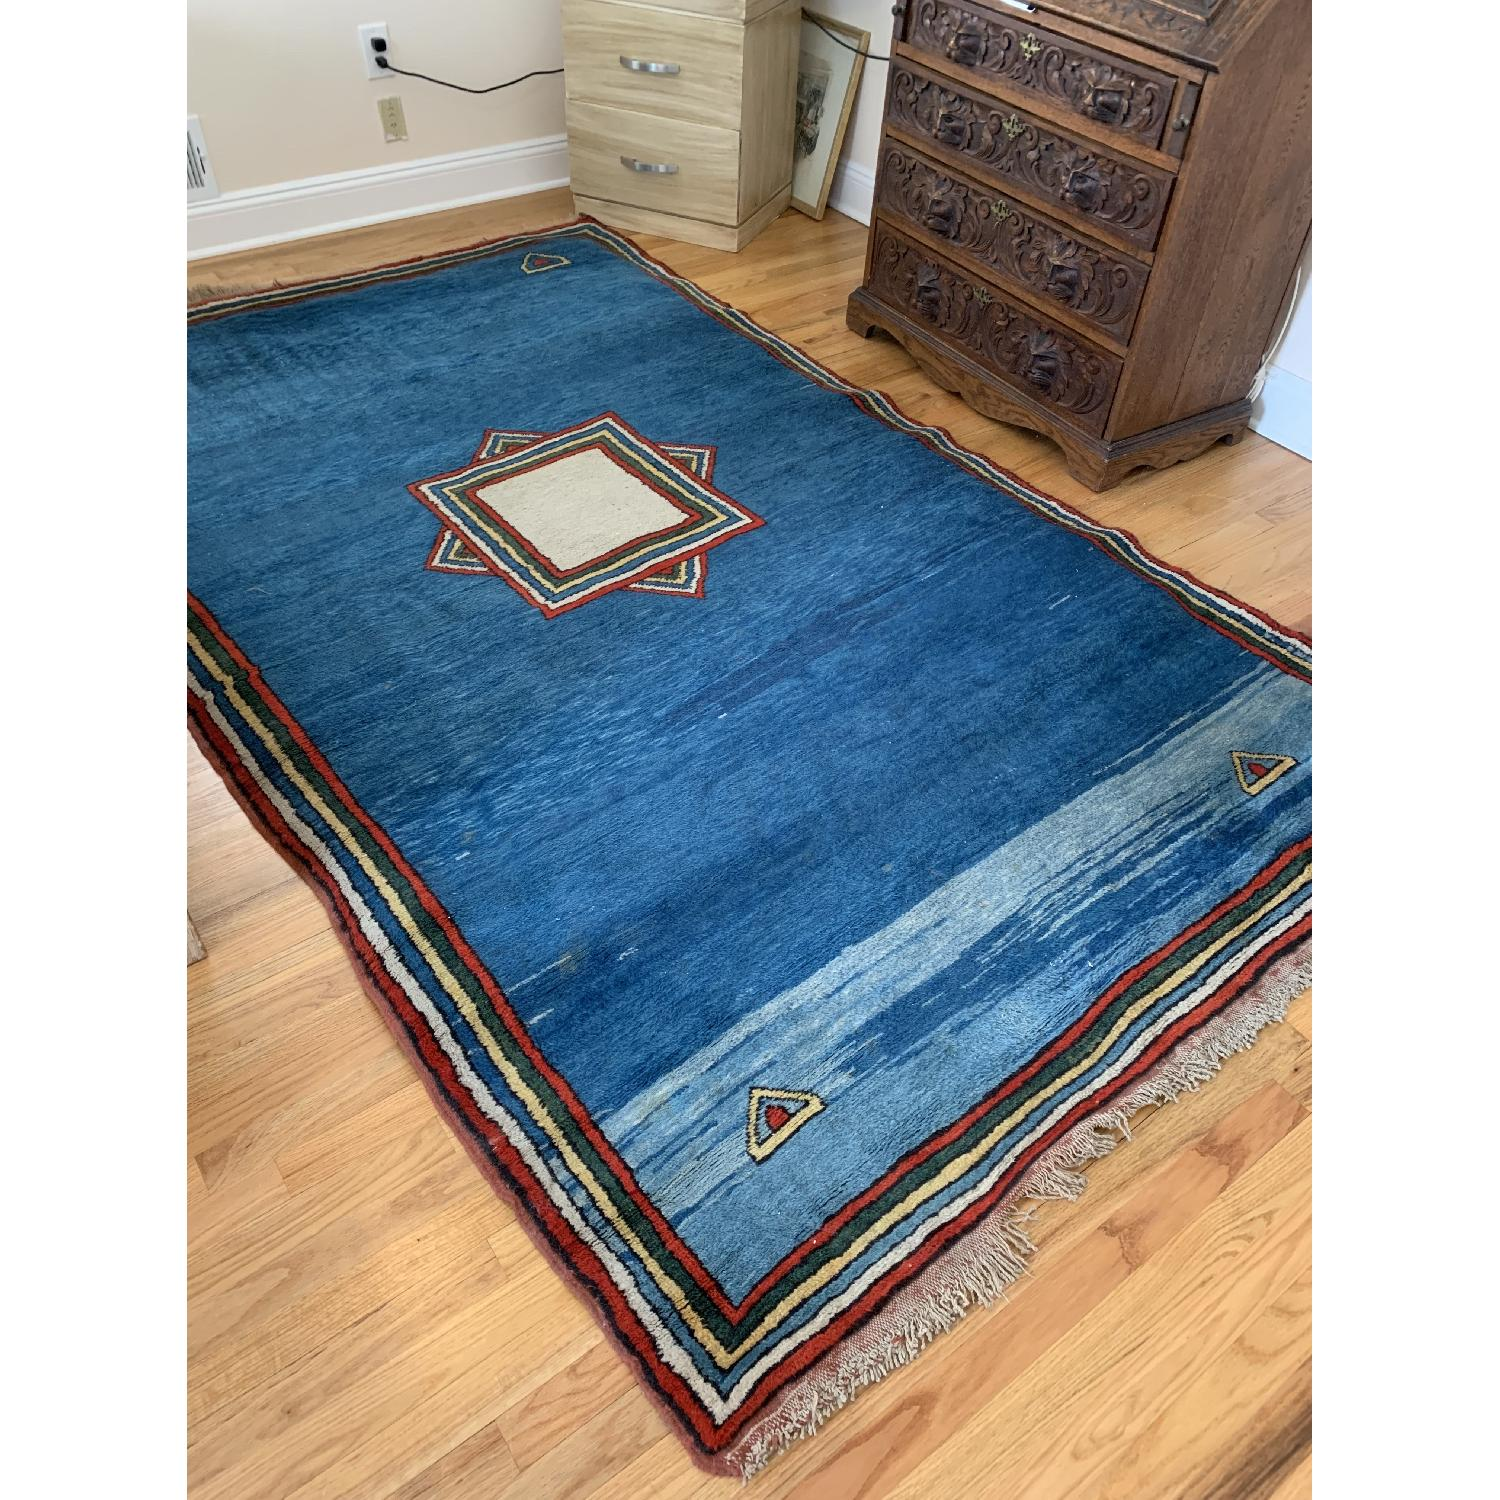 Persian Area Rug in Contemporary Design-2